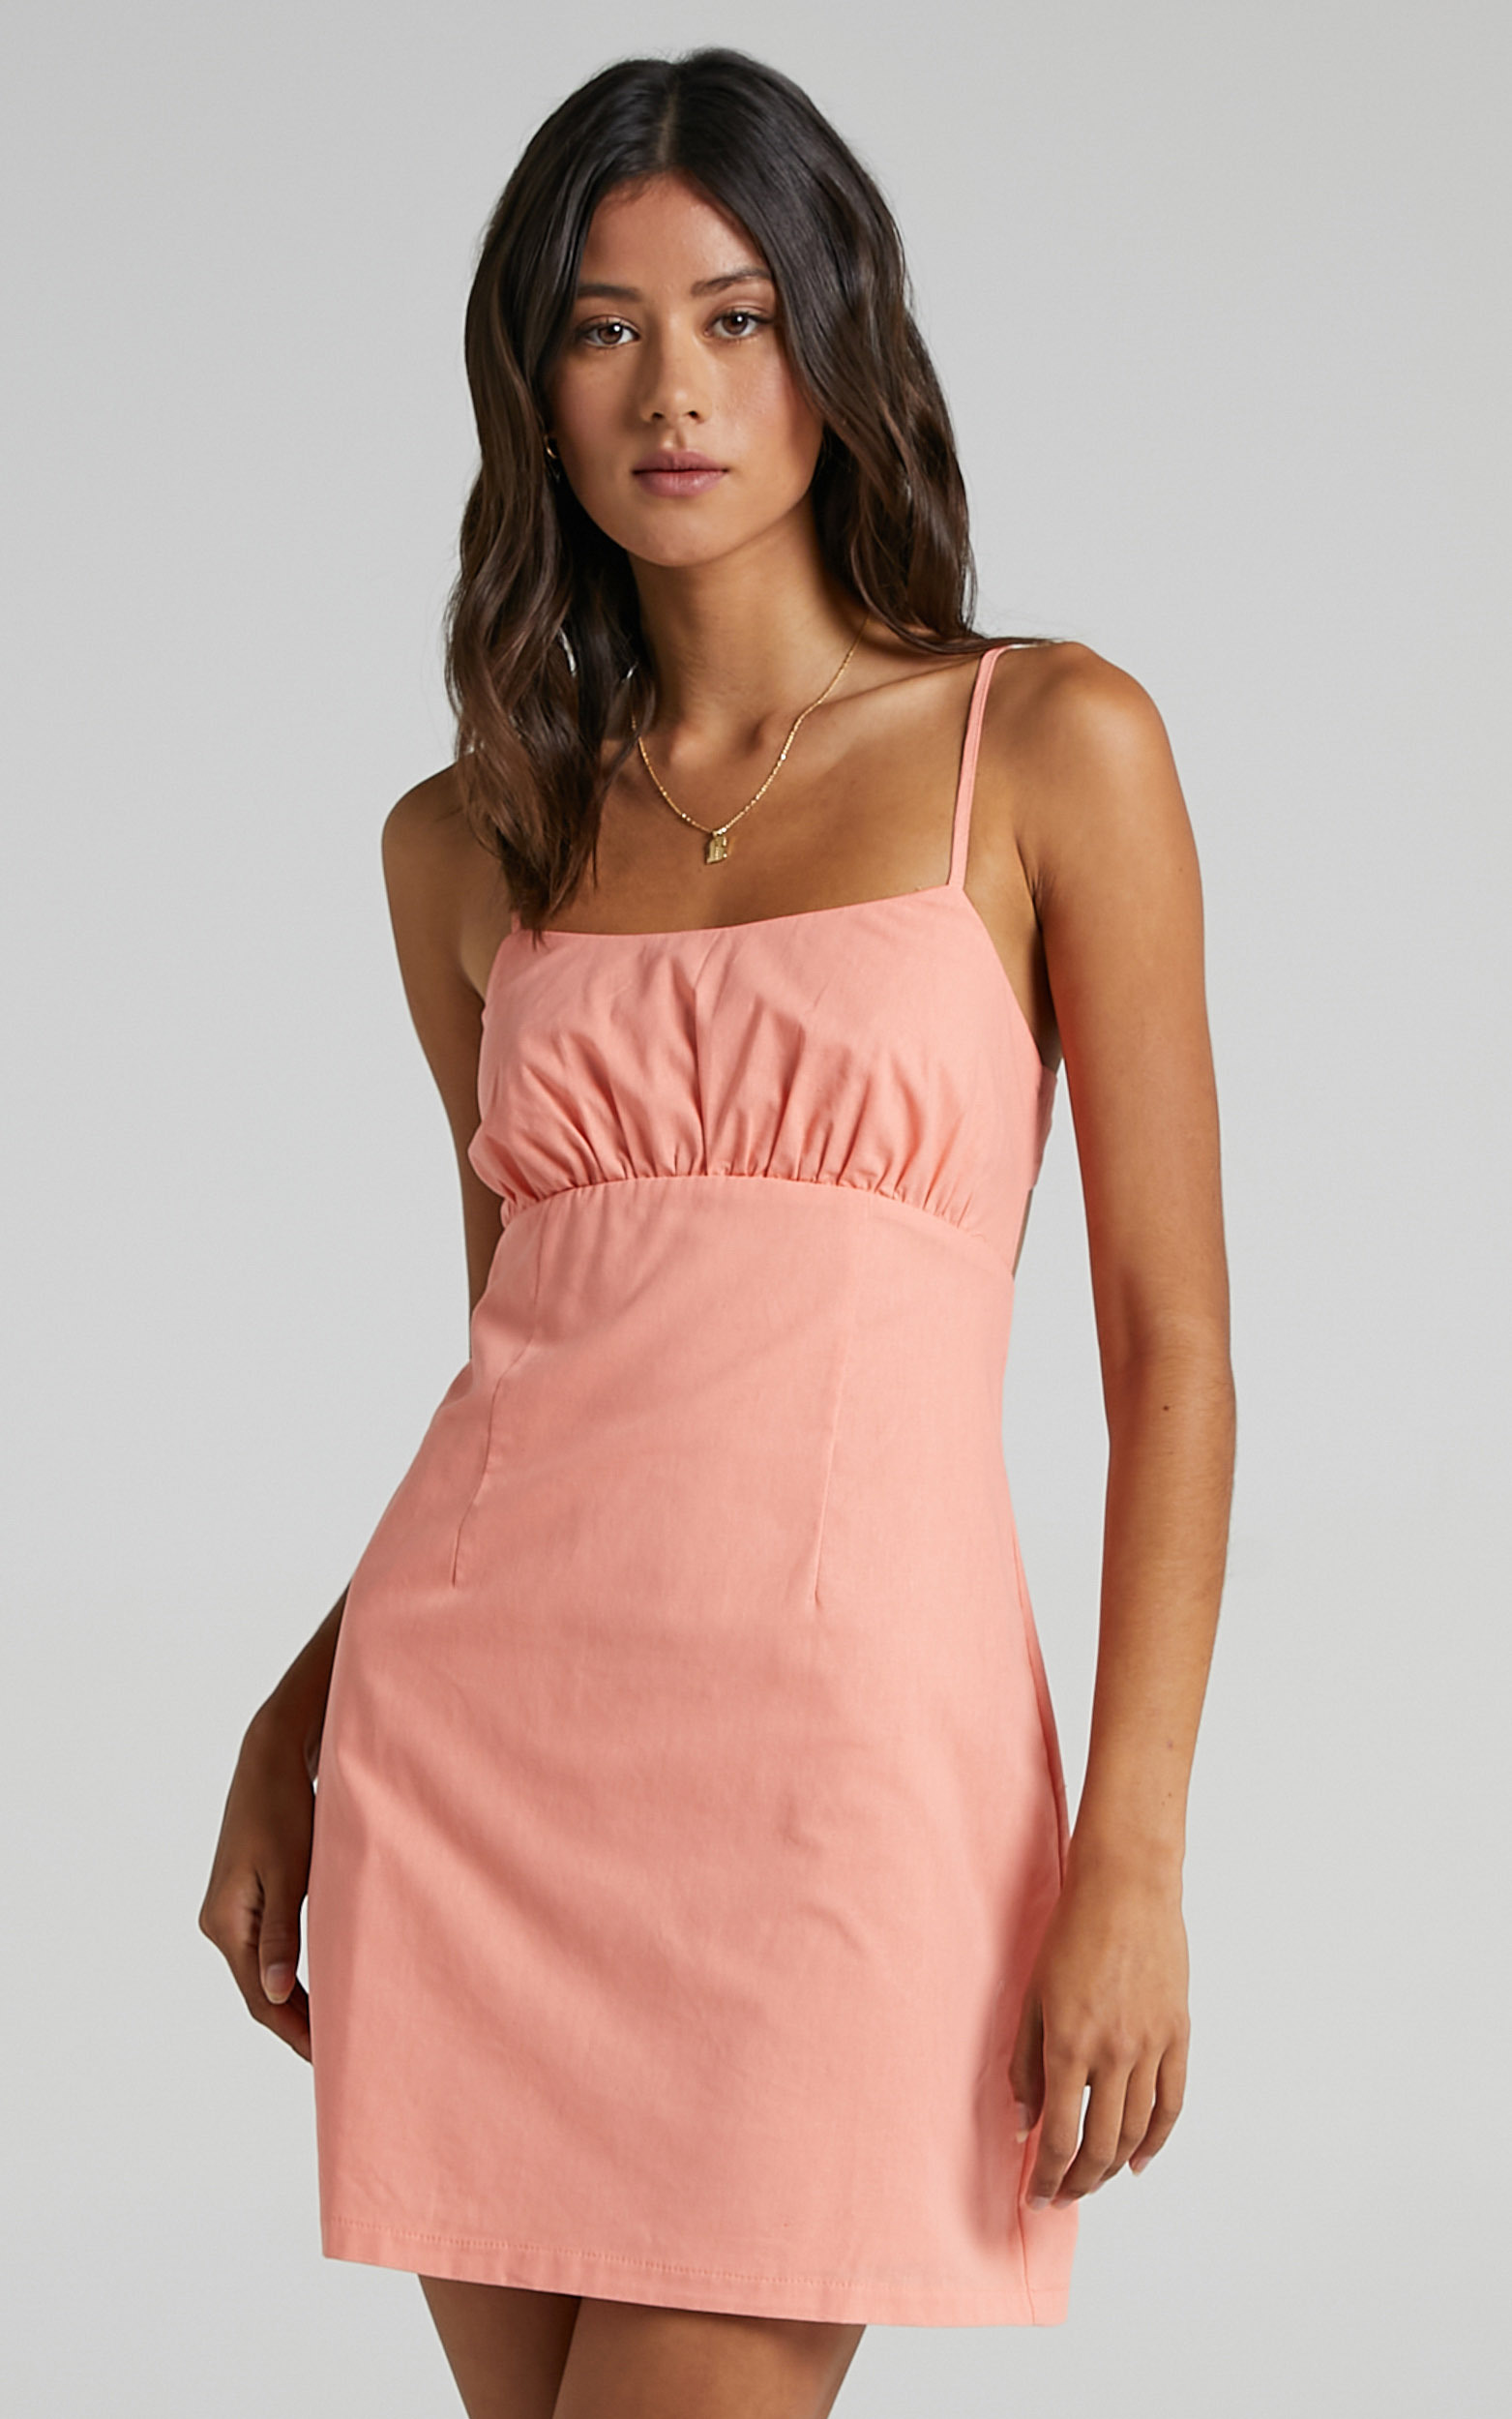 Gretna Dress in Peach - 06, ORG1, hi-res image number null